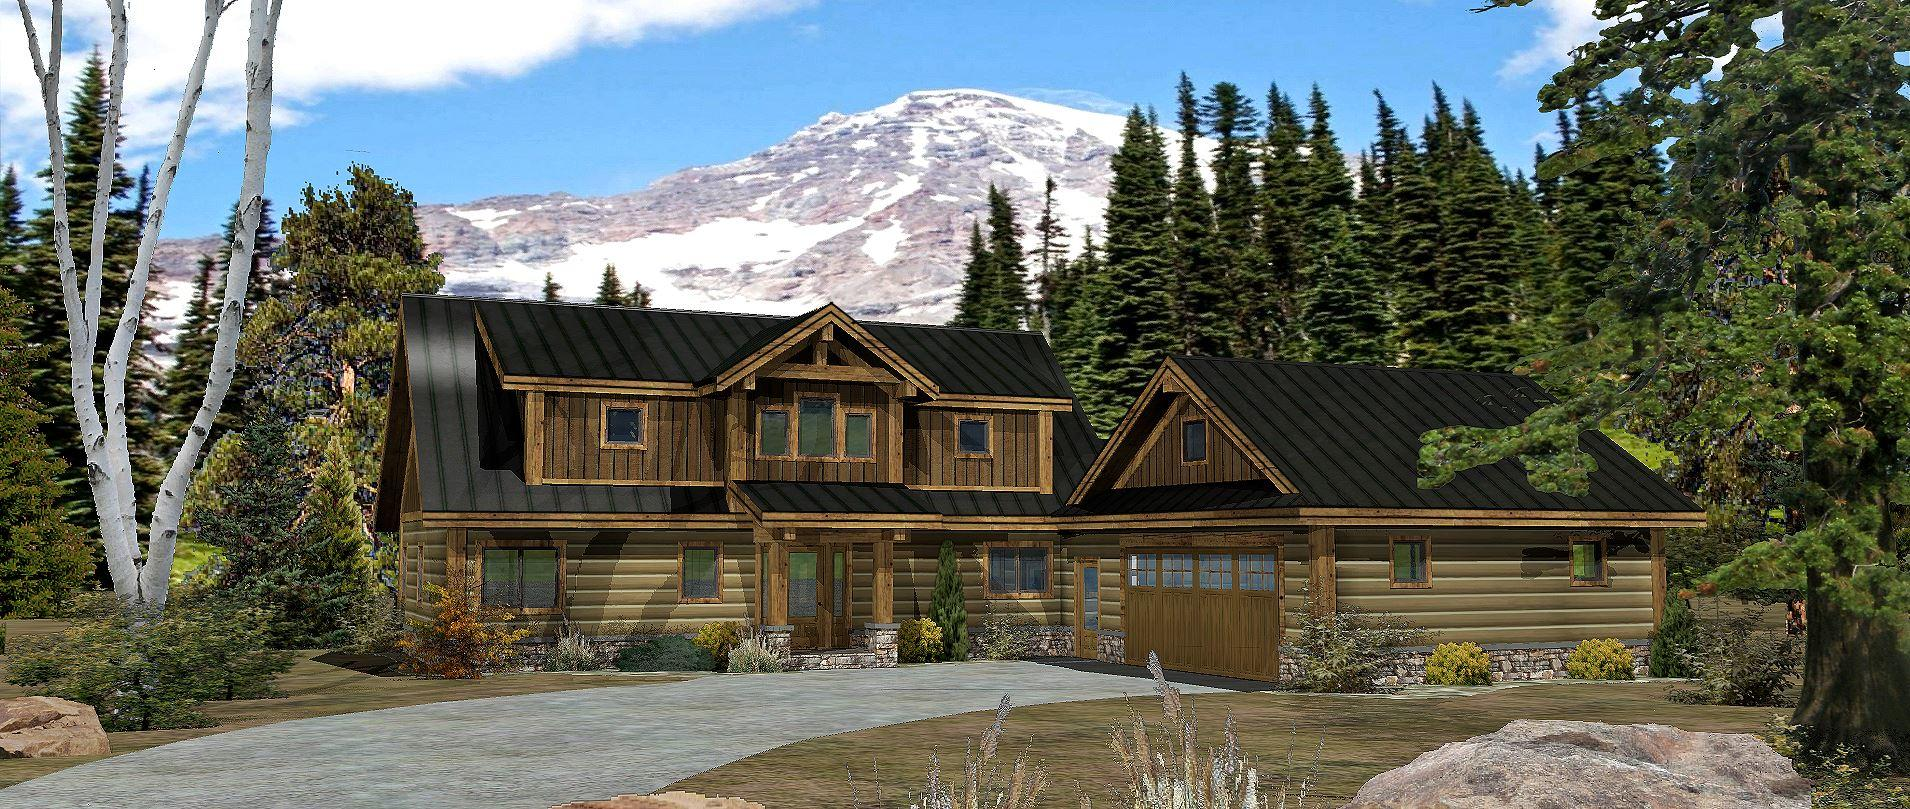 Alpine Meadow III - Front Rendering by WLH 1